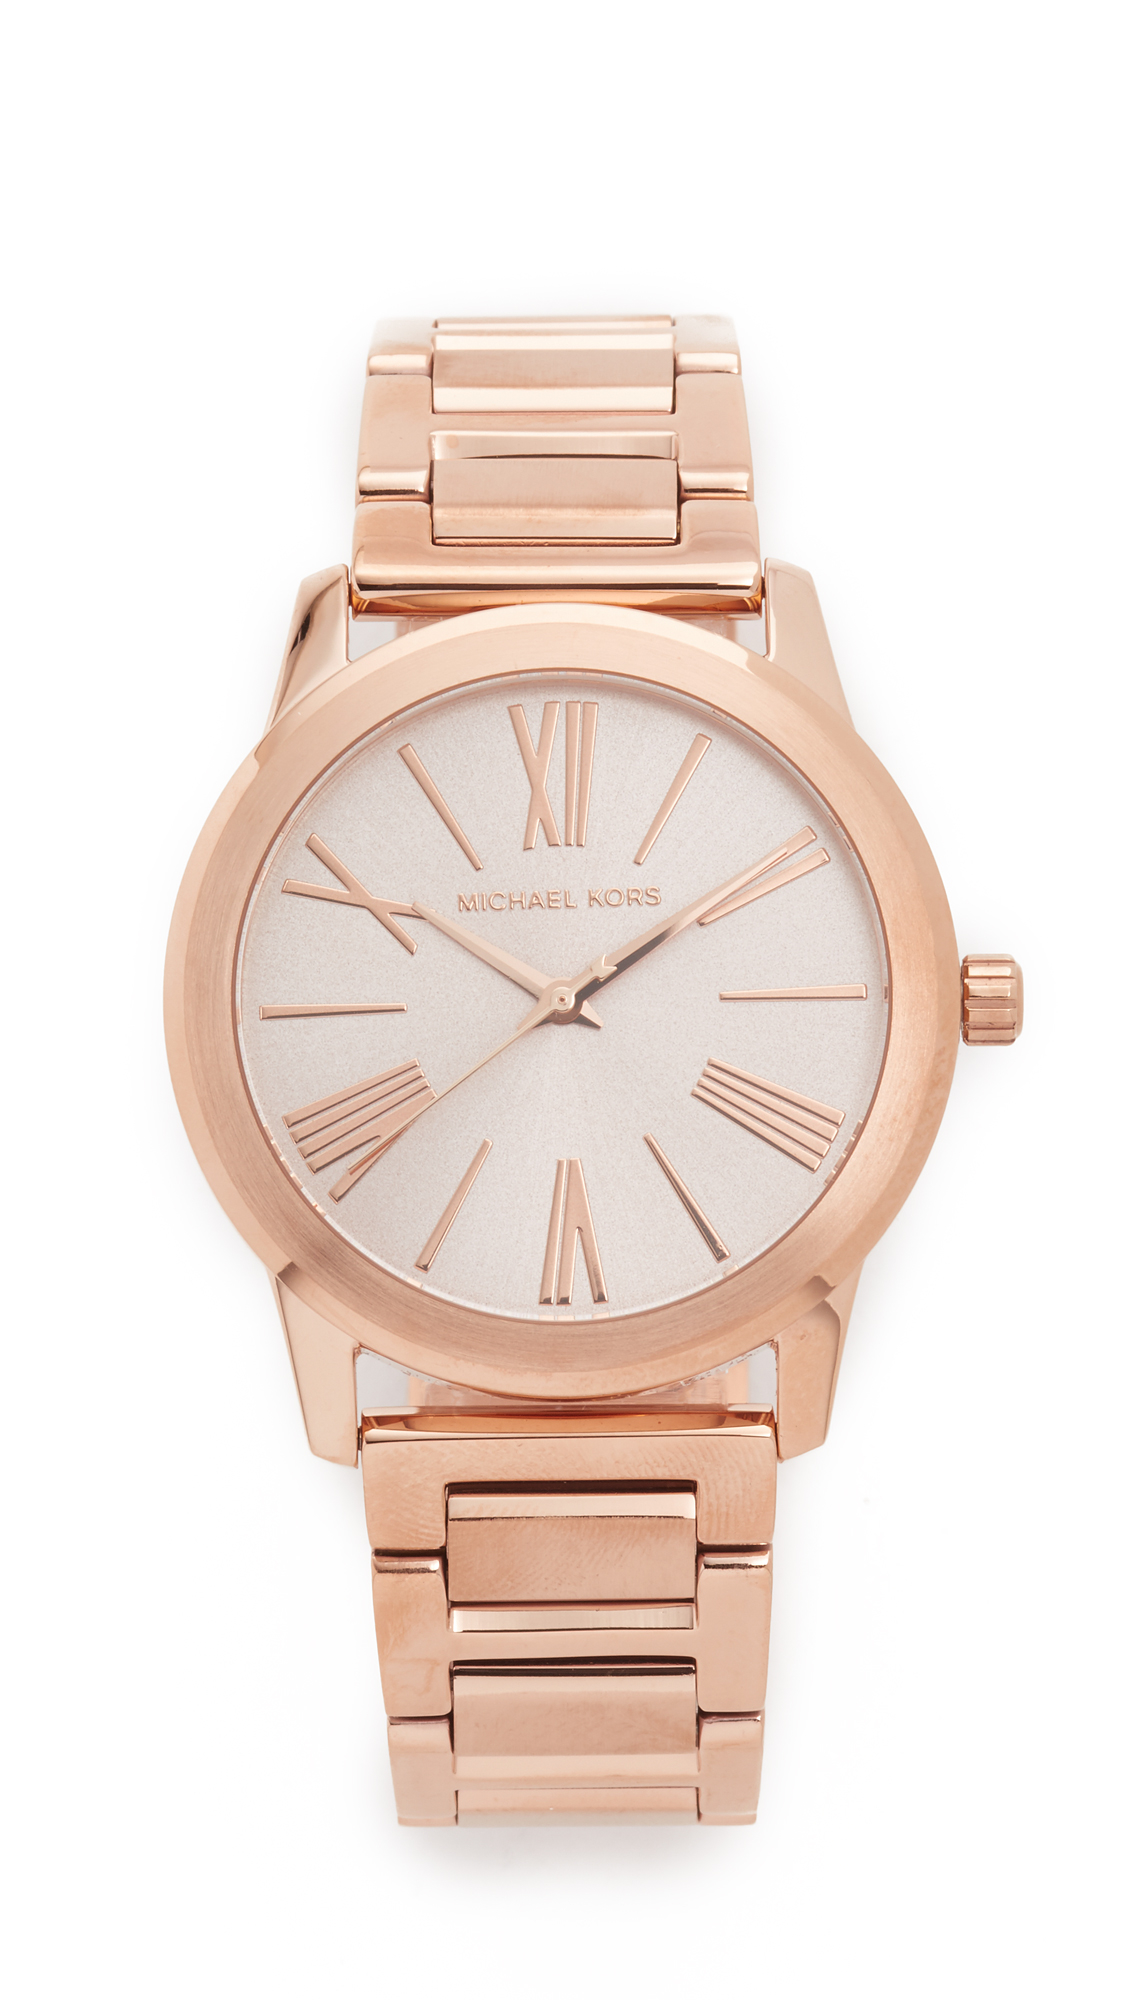 5a54c36db99a Michael Kors Hartman Watch in Pink - Lyst